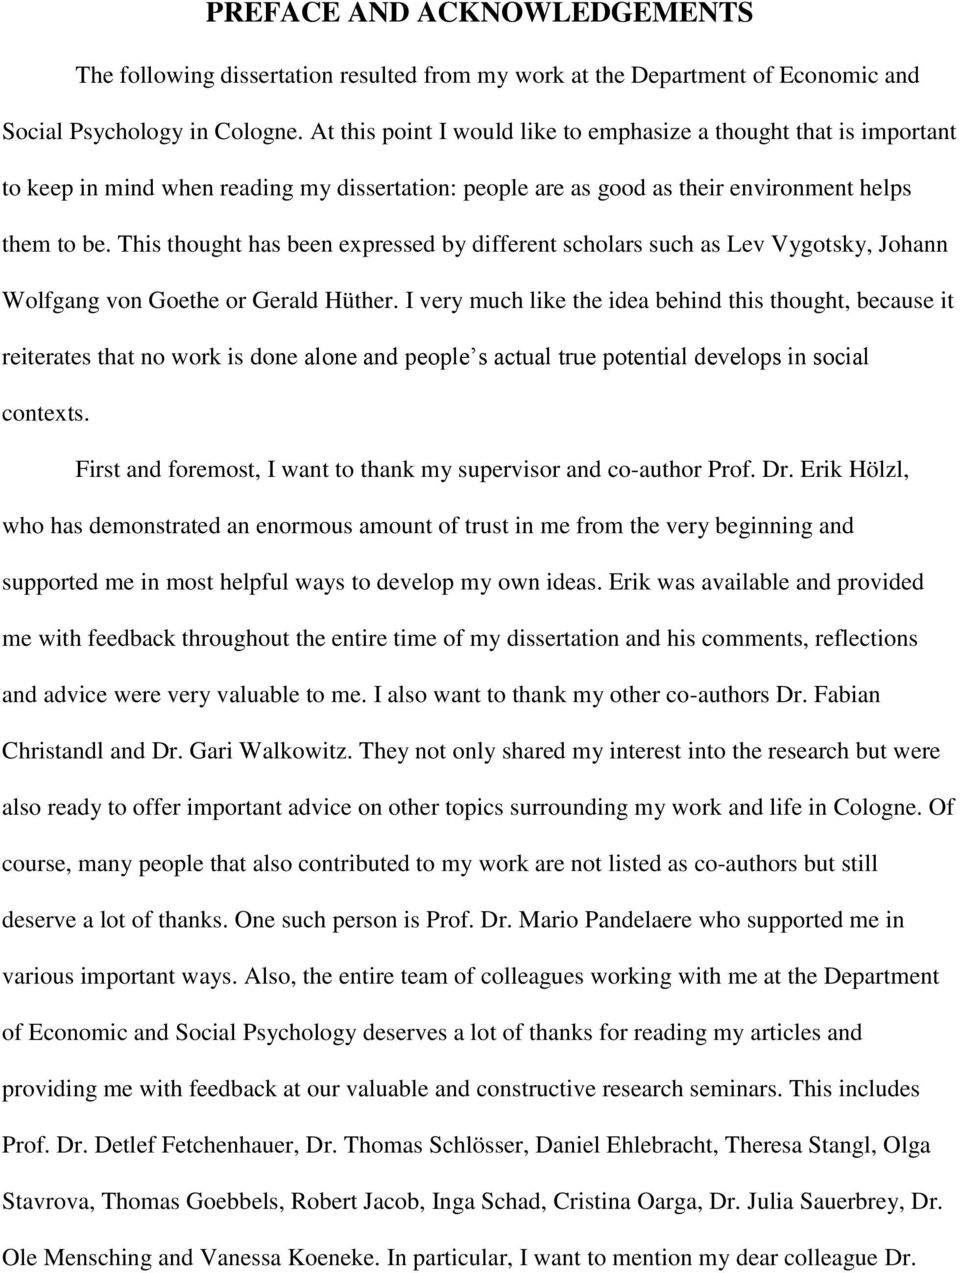 Reaching out to others essay help